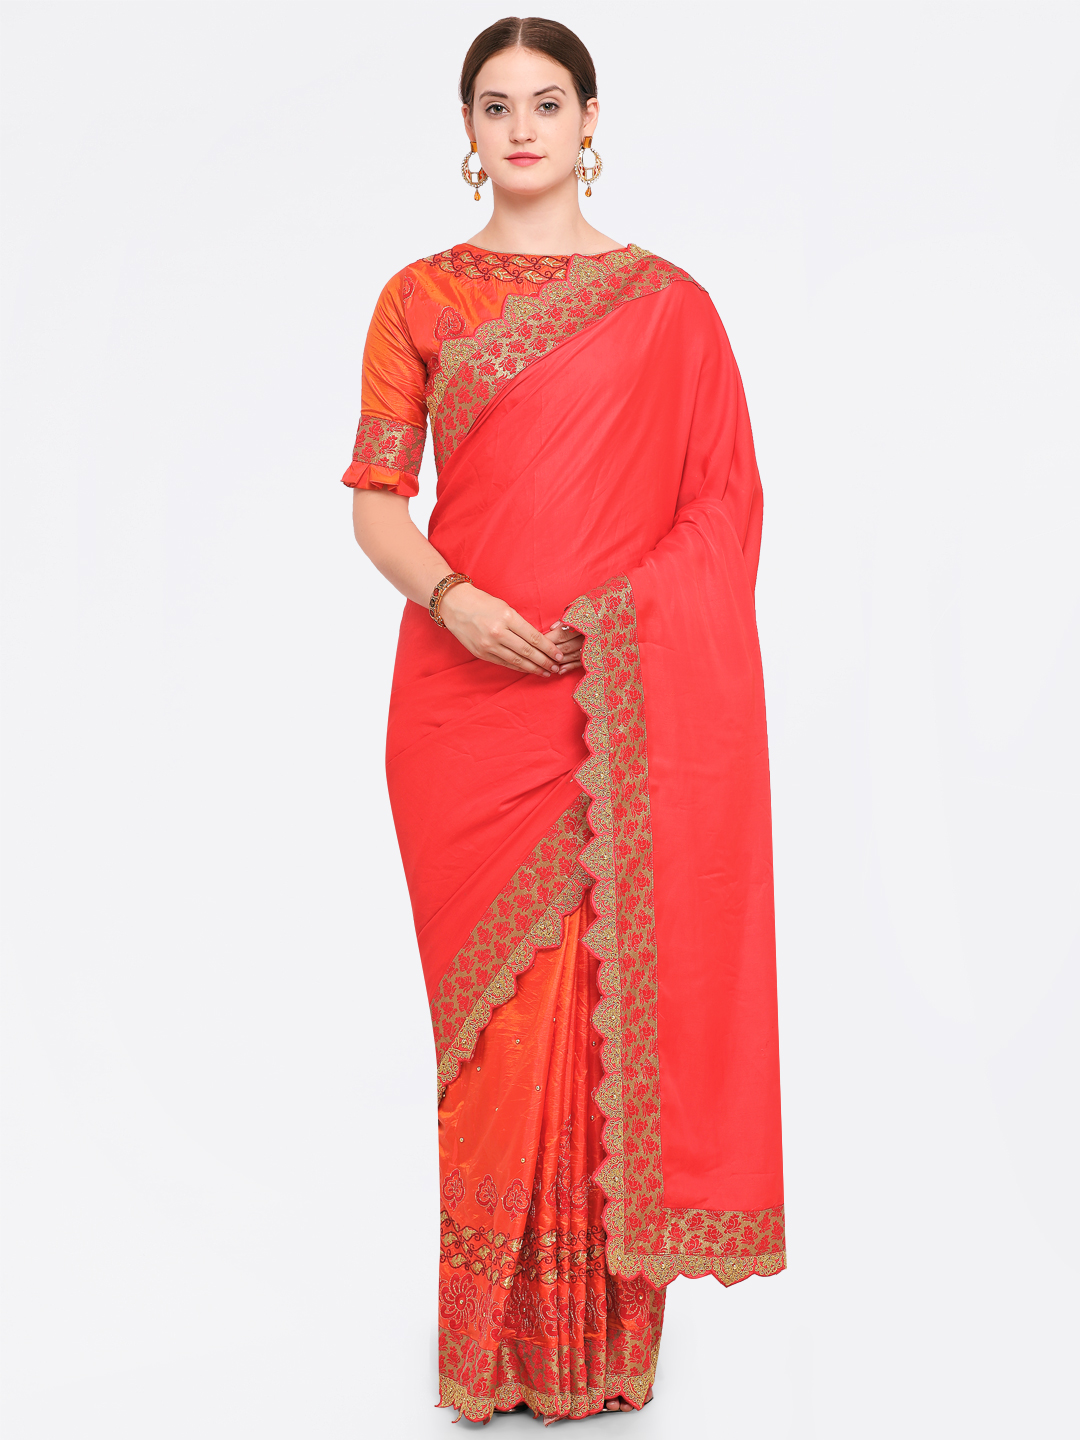 Indian Women Red & Orange Pure Georgette Embroidered Saree Price in India